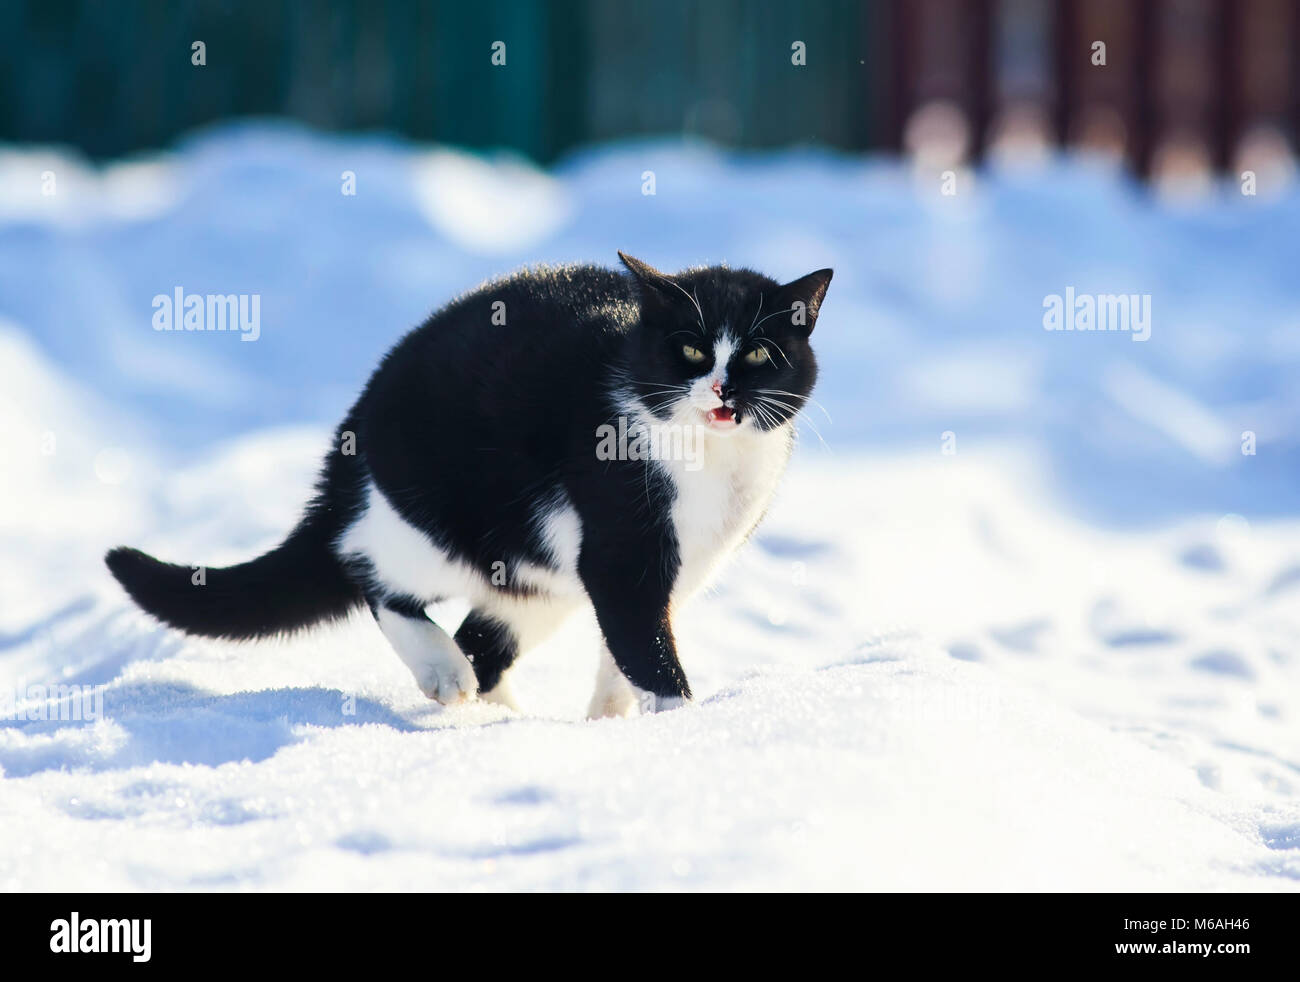 cat walks on white fluffy snow in winter yard and meows loudly - Stock Image